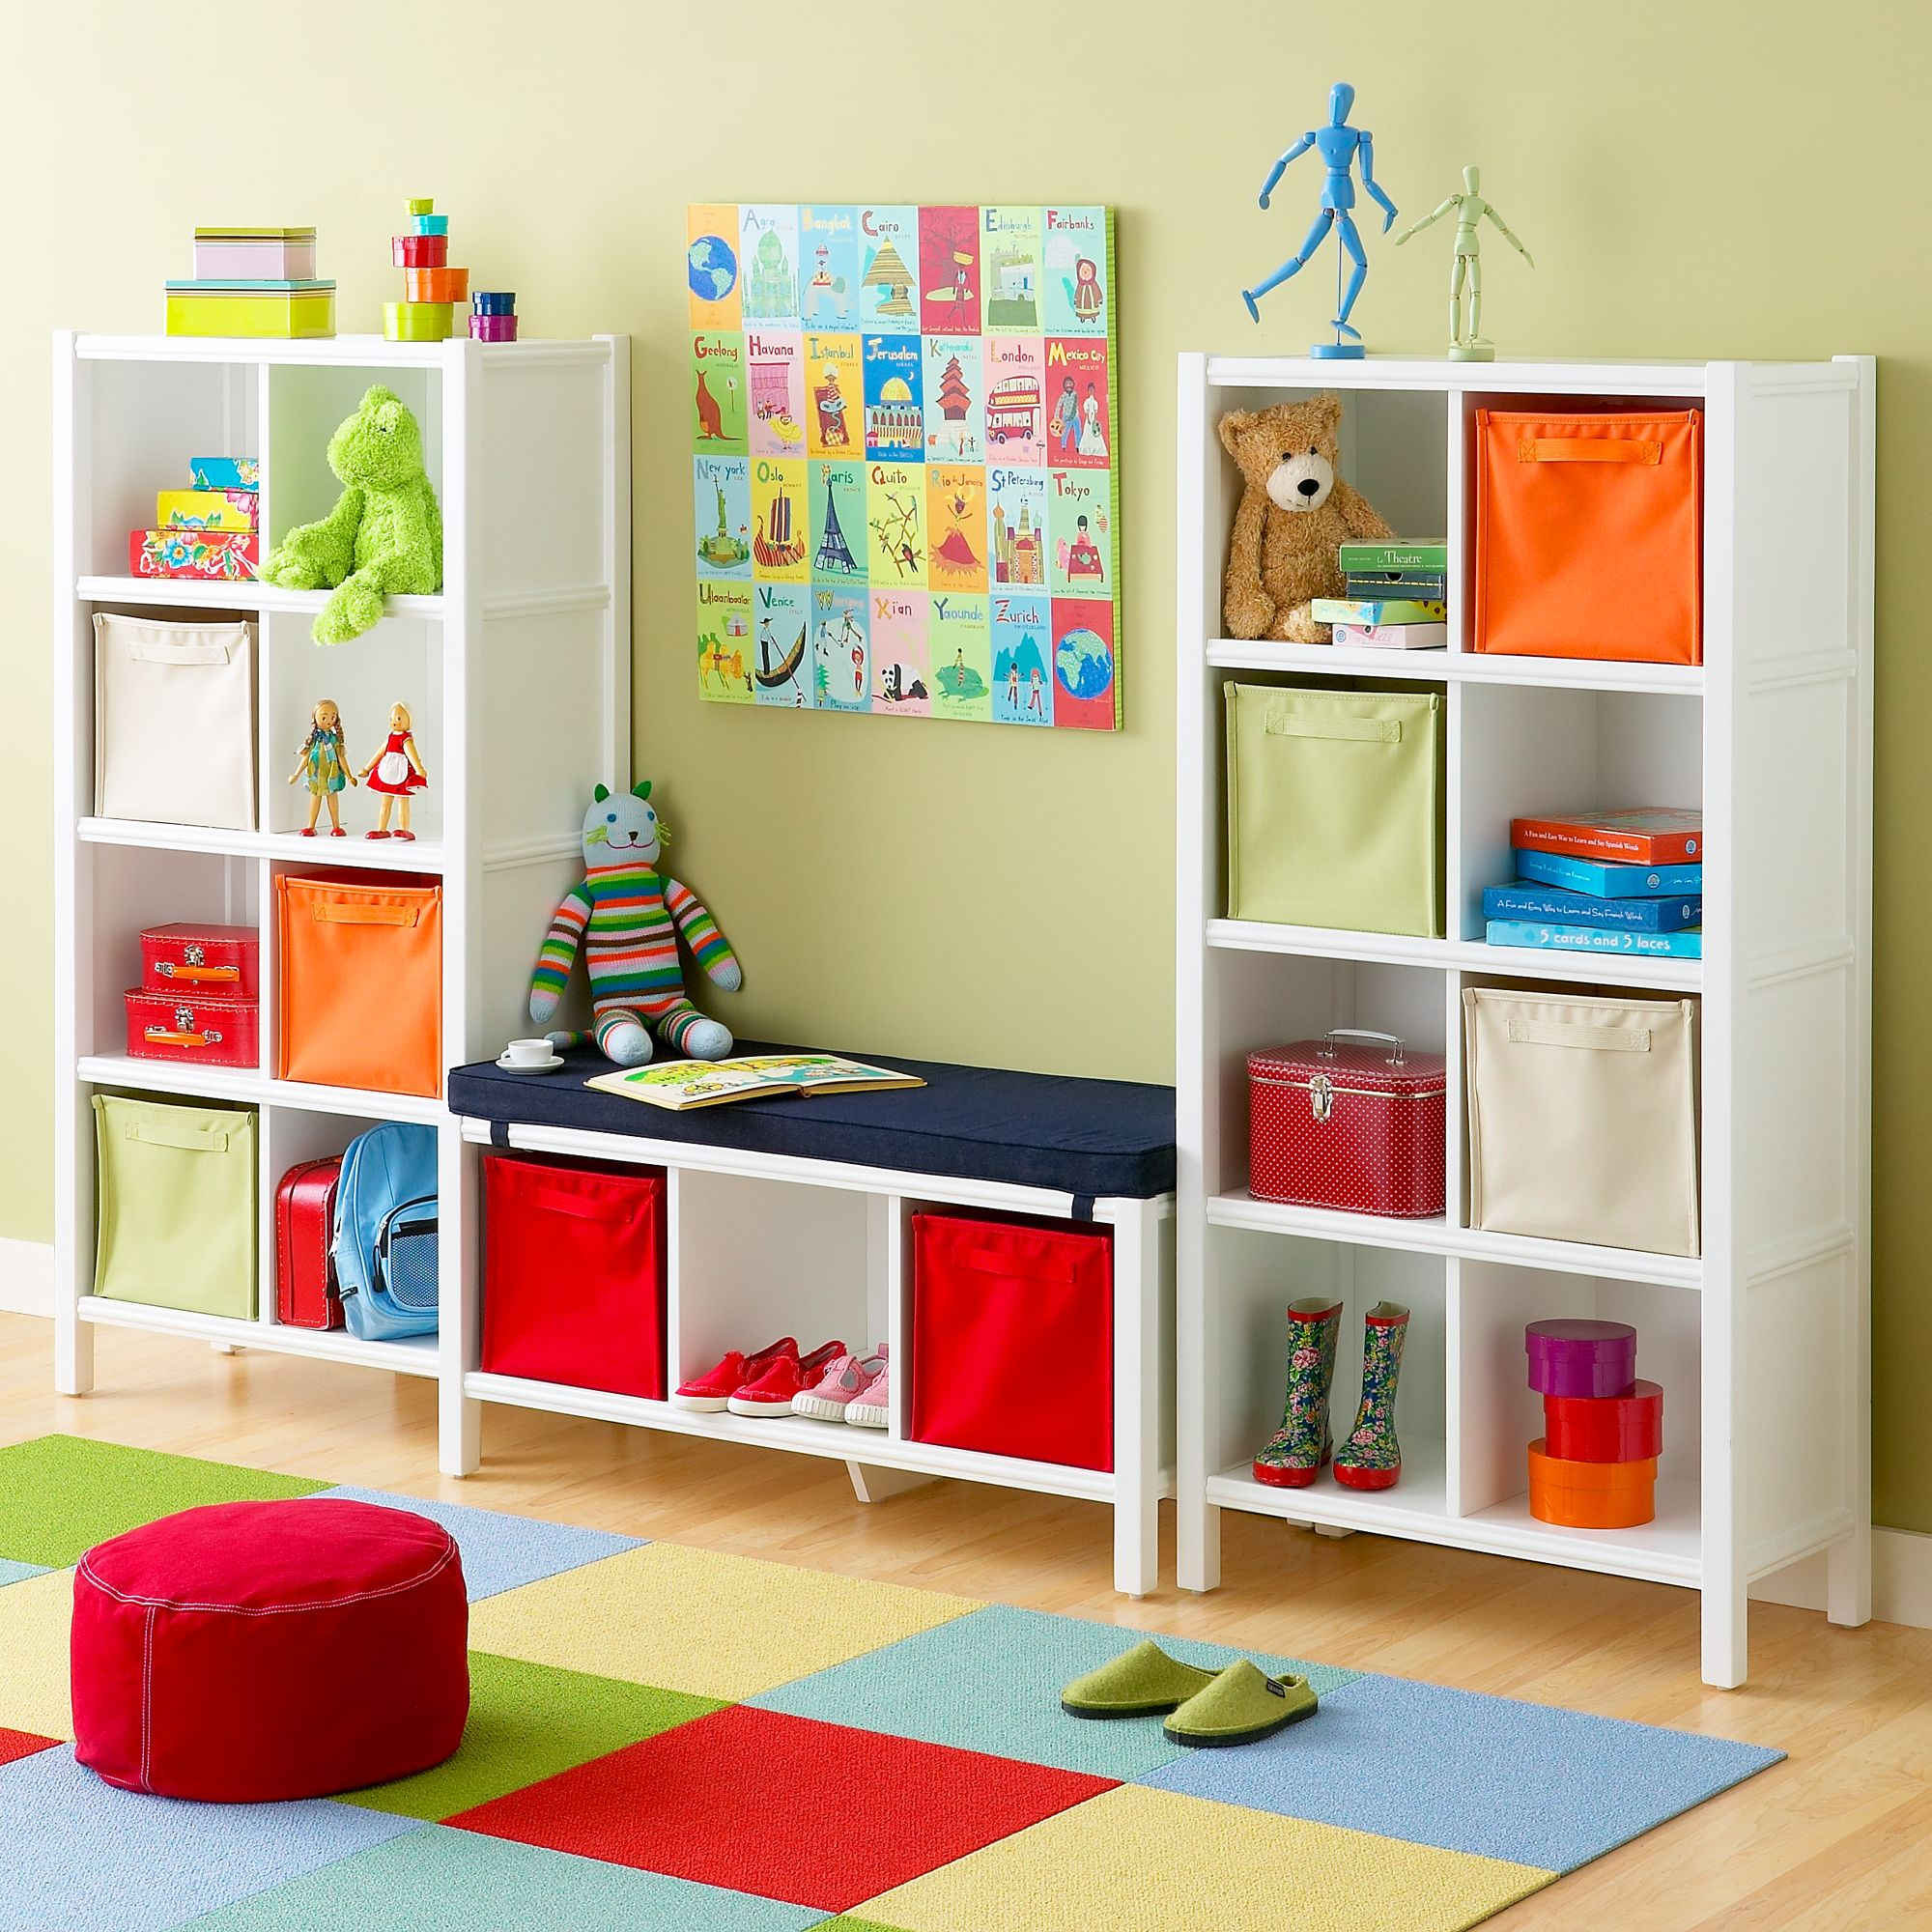 Storage furniture for children's rooms Storage boxes for children's rooms Storage furniture for girls Storage containers for playrooms FDQUEPL